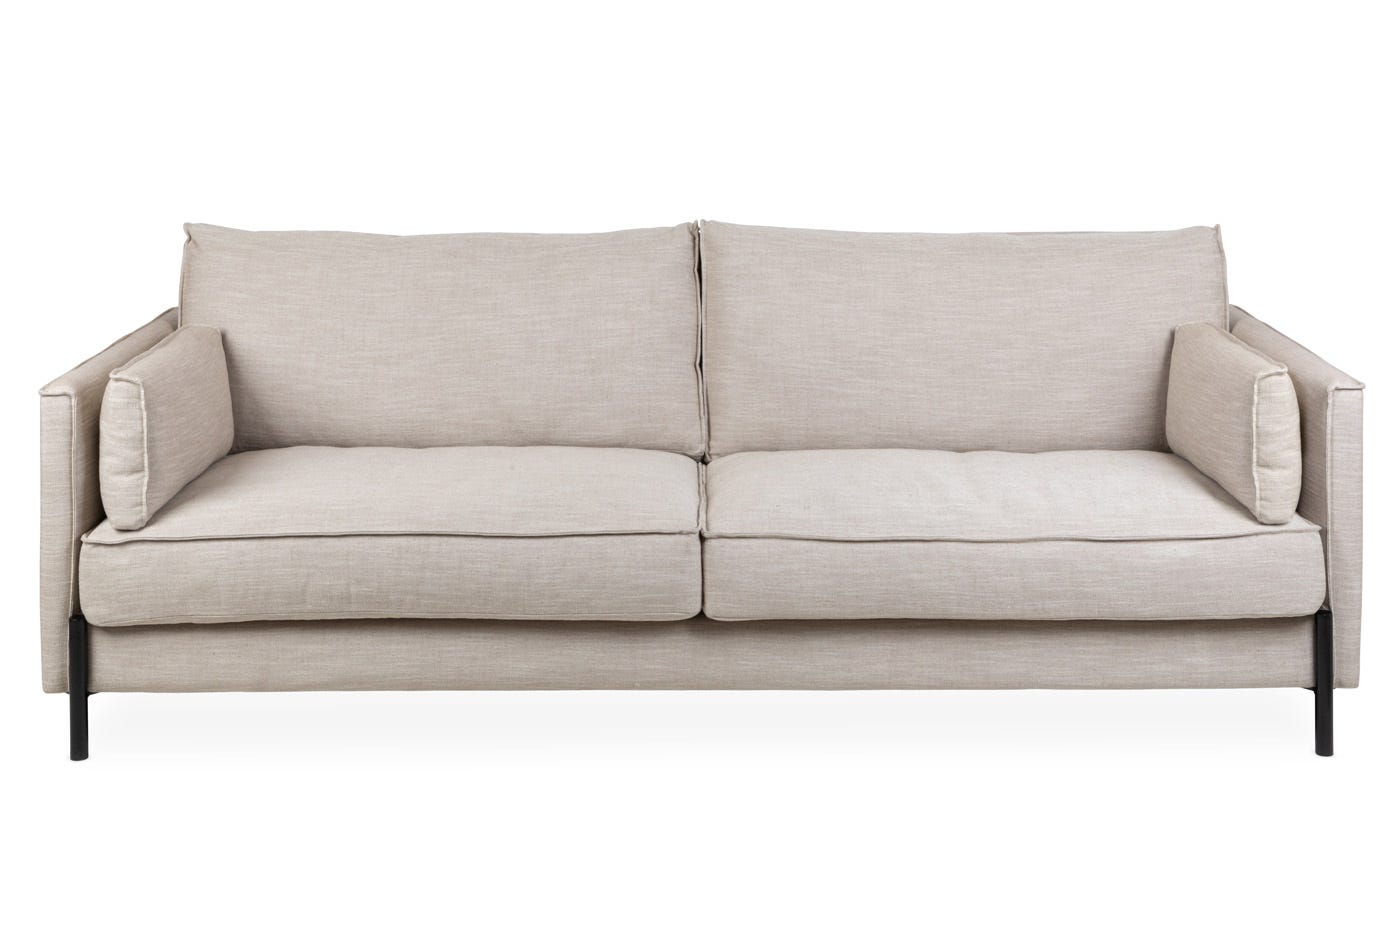 Tortona 4 Seater Sofa in Broad Weave Putty - Front